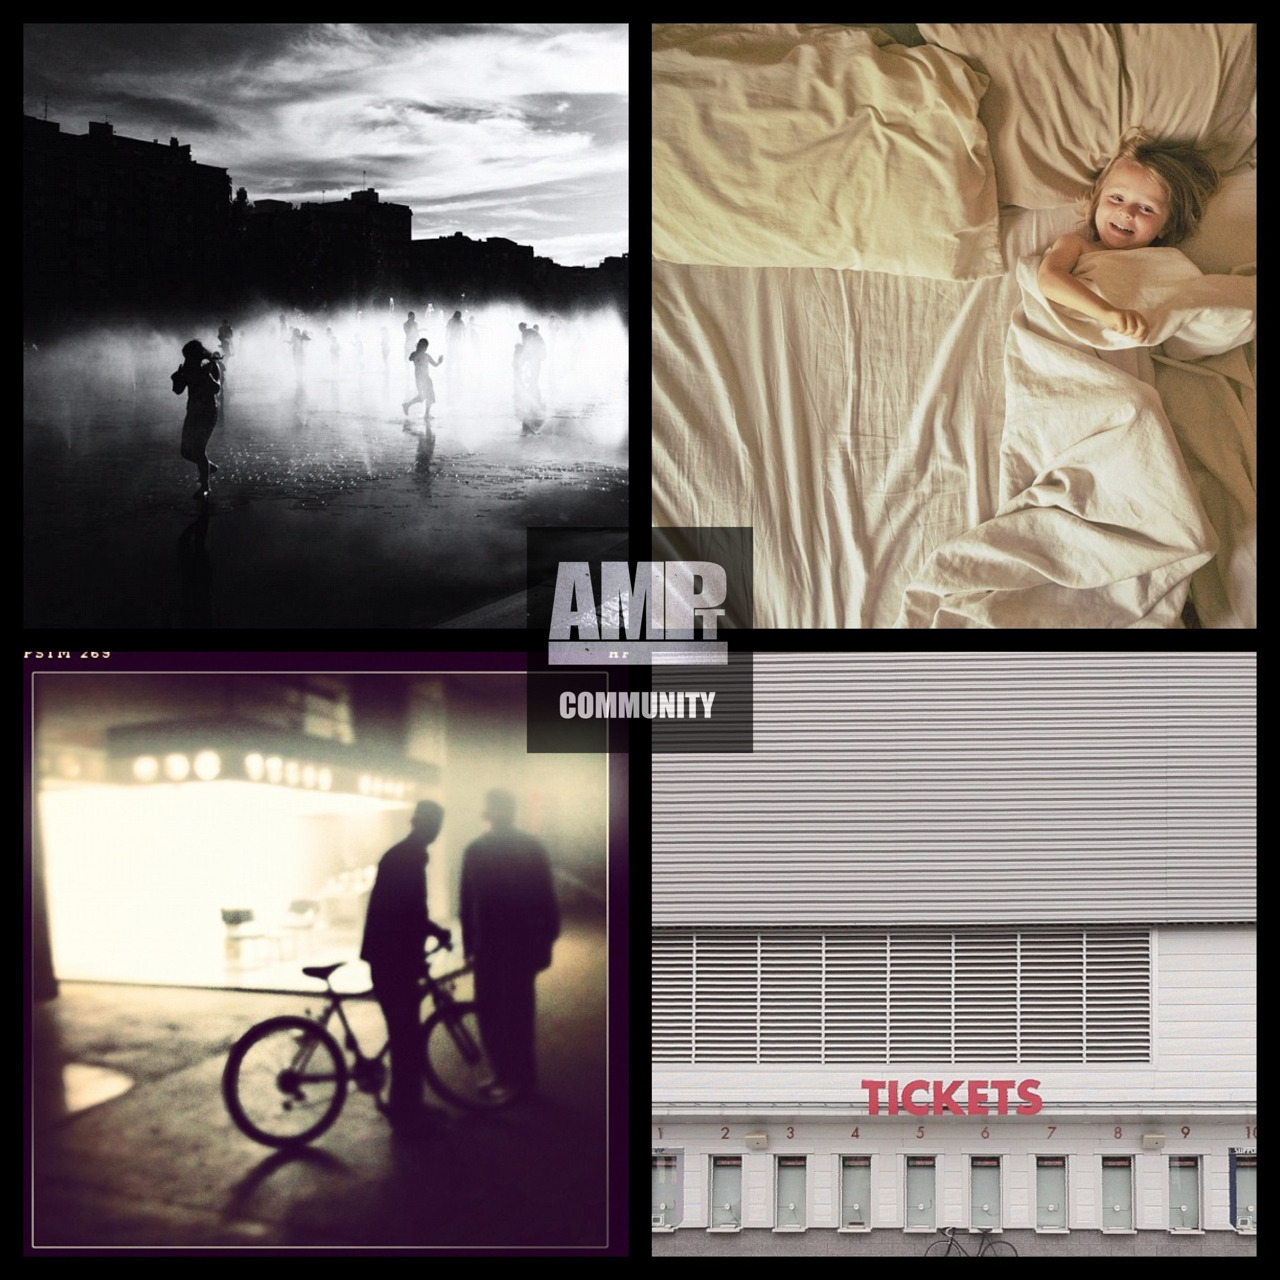 AMPt Community Recommendations   Here are 4 IGers we would like to introduce you to. Stop by their feeds,say hello and check out their editing process for the images above!   Clockwise from top left:   @joseluisbarcia  Shot with native camera Apps used: cameramatic, snapseed   @adamjoelsmith  Taken with native camera  Apps used: snapseed   @eddielago  Shot with native camera  Apps used: snapseed, VSCOcam   @iphonehipsta  Shot with hipstamatic Lens: loftus film: pistil  IG filter    Thank you for sharing with #AMPt_Community! Interested in having your work seen and considered for a spotlight? Tag to #Ampt_Community and include apps used and your editing process in the comment.    TIP: Listing the apps used to shoot/edit is a requirement for all nominated/featured images. Make your image standout by providing this information!